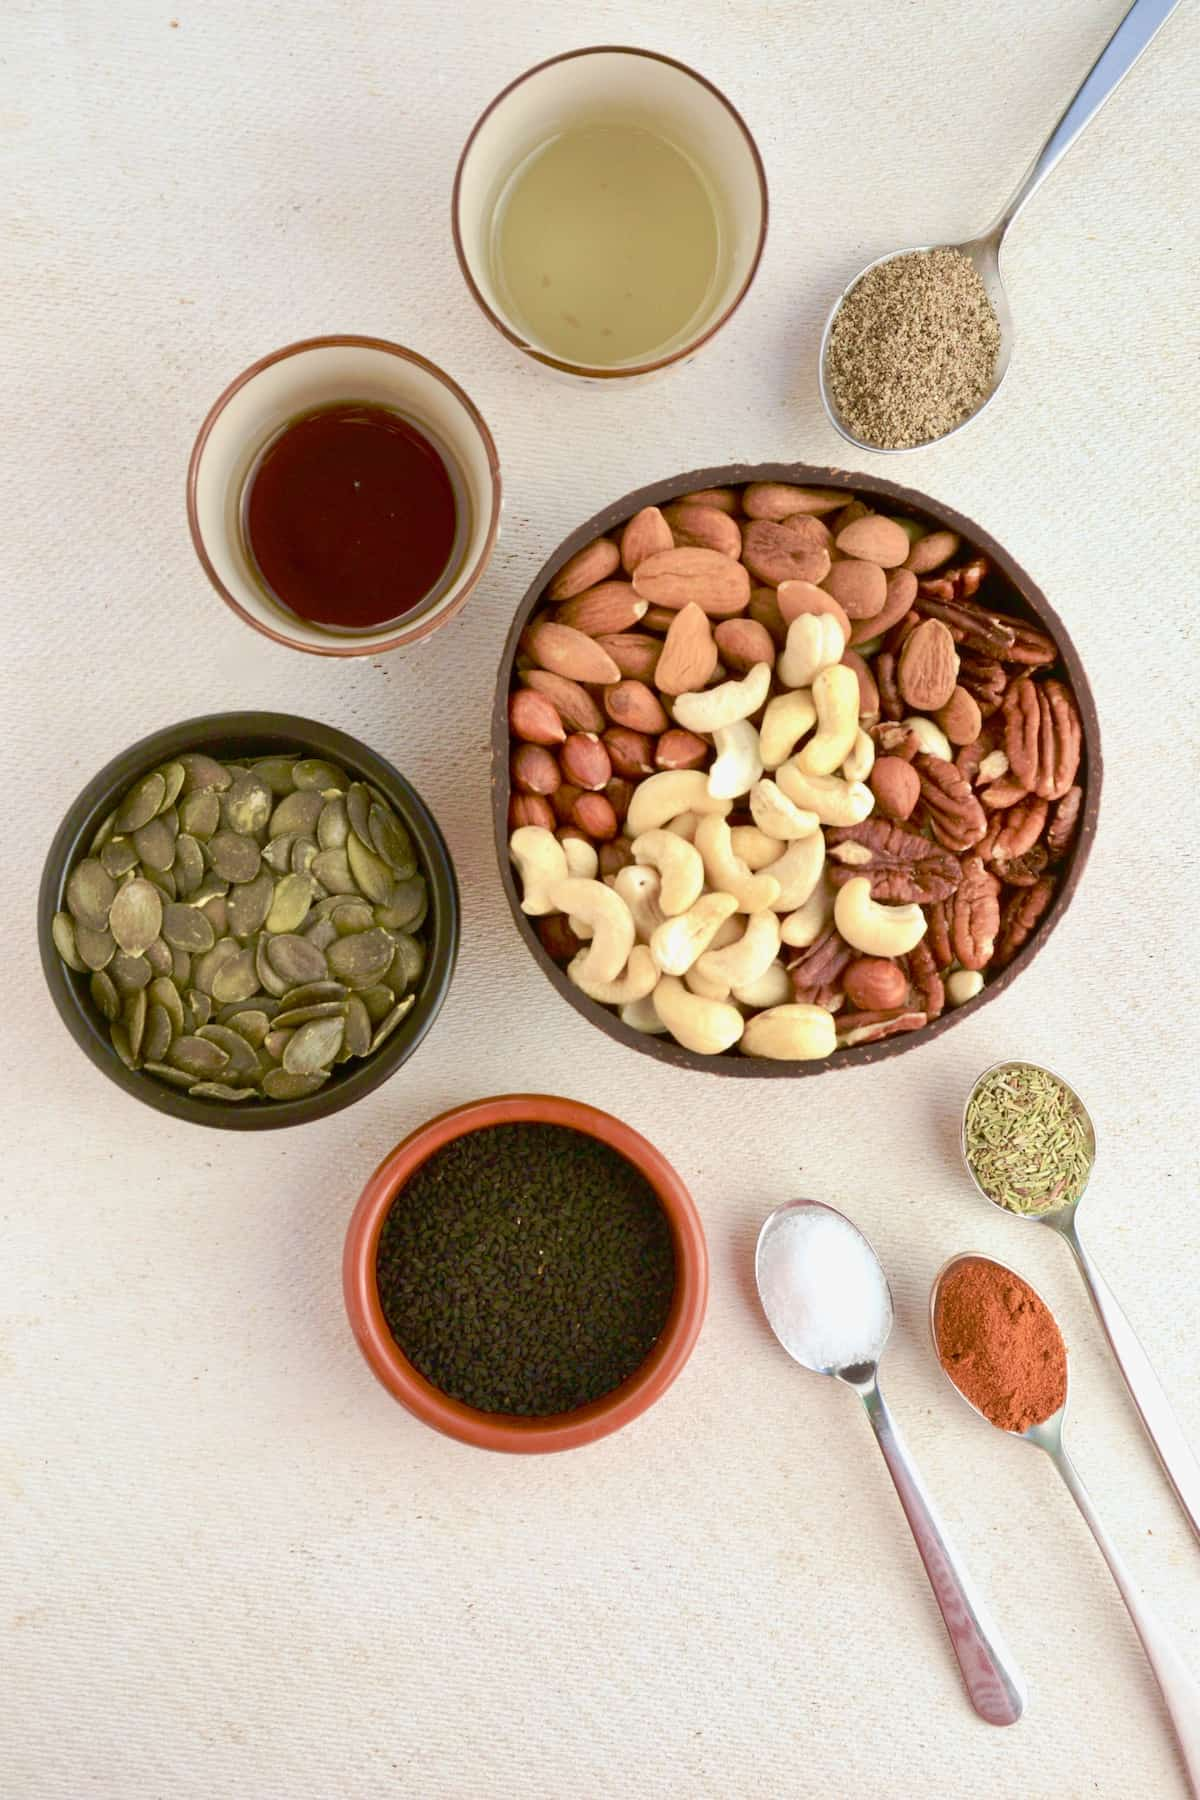 Bowls and spoonfuls of ingredients for spicy nuts.